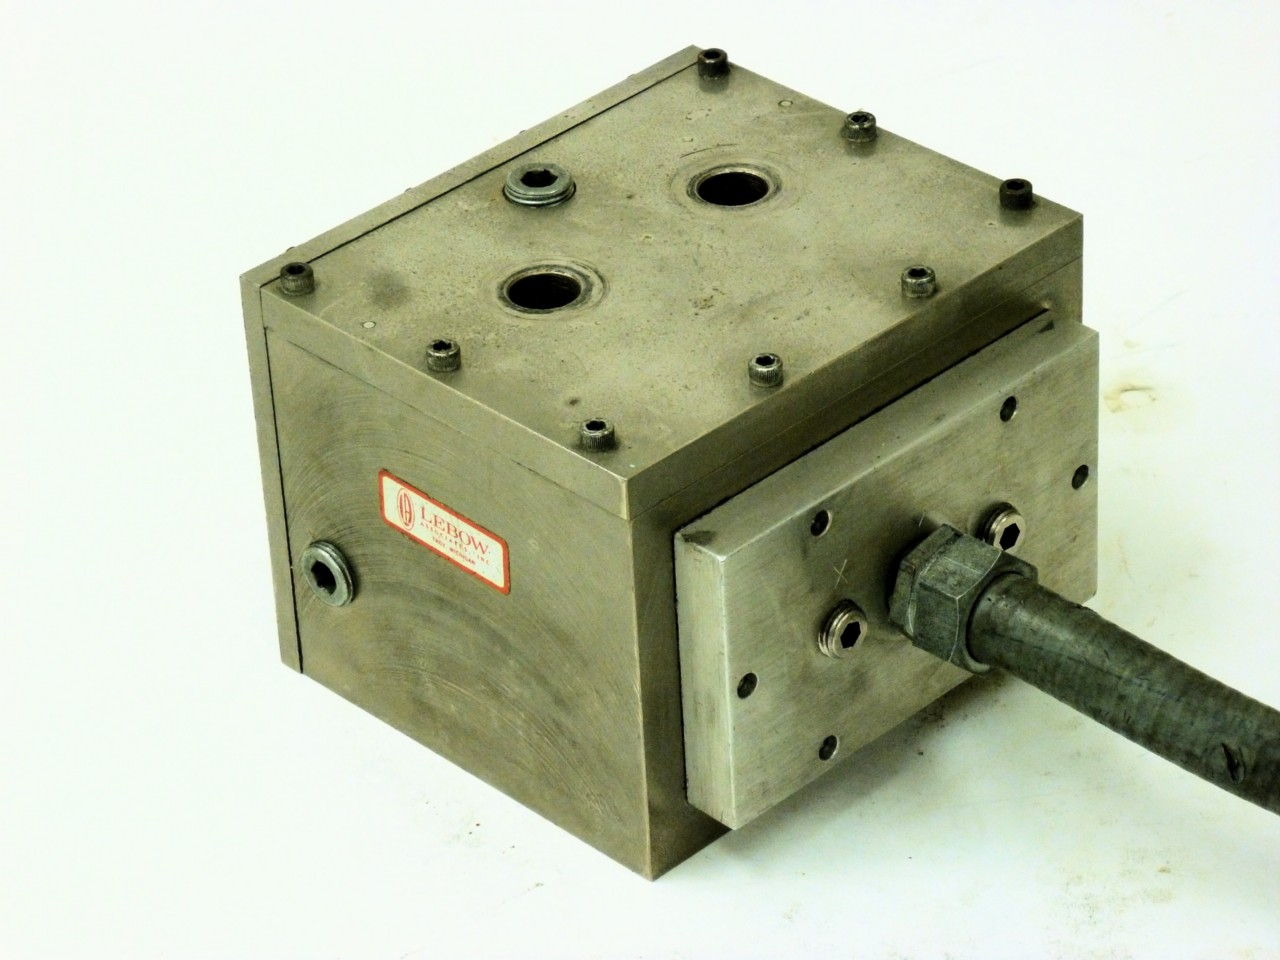 Dynamometer Load Cell : Lebow axis dynamometer transducer load cell for lathe